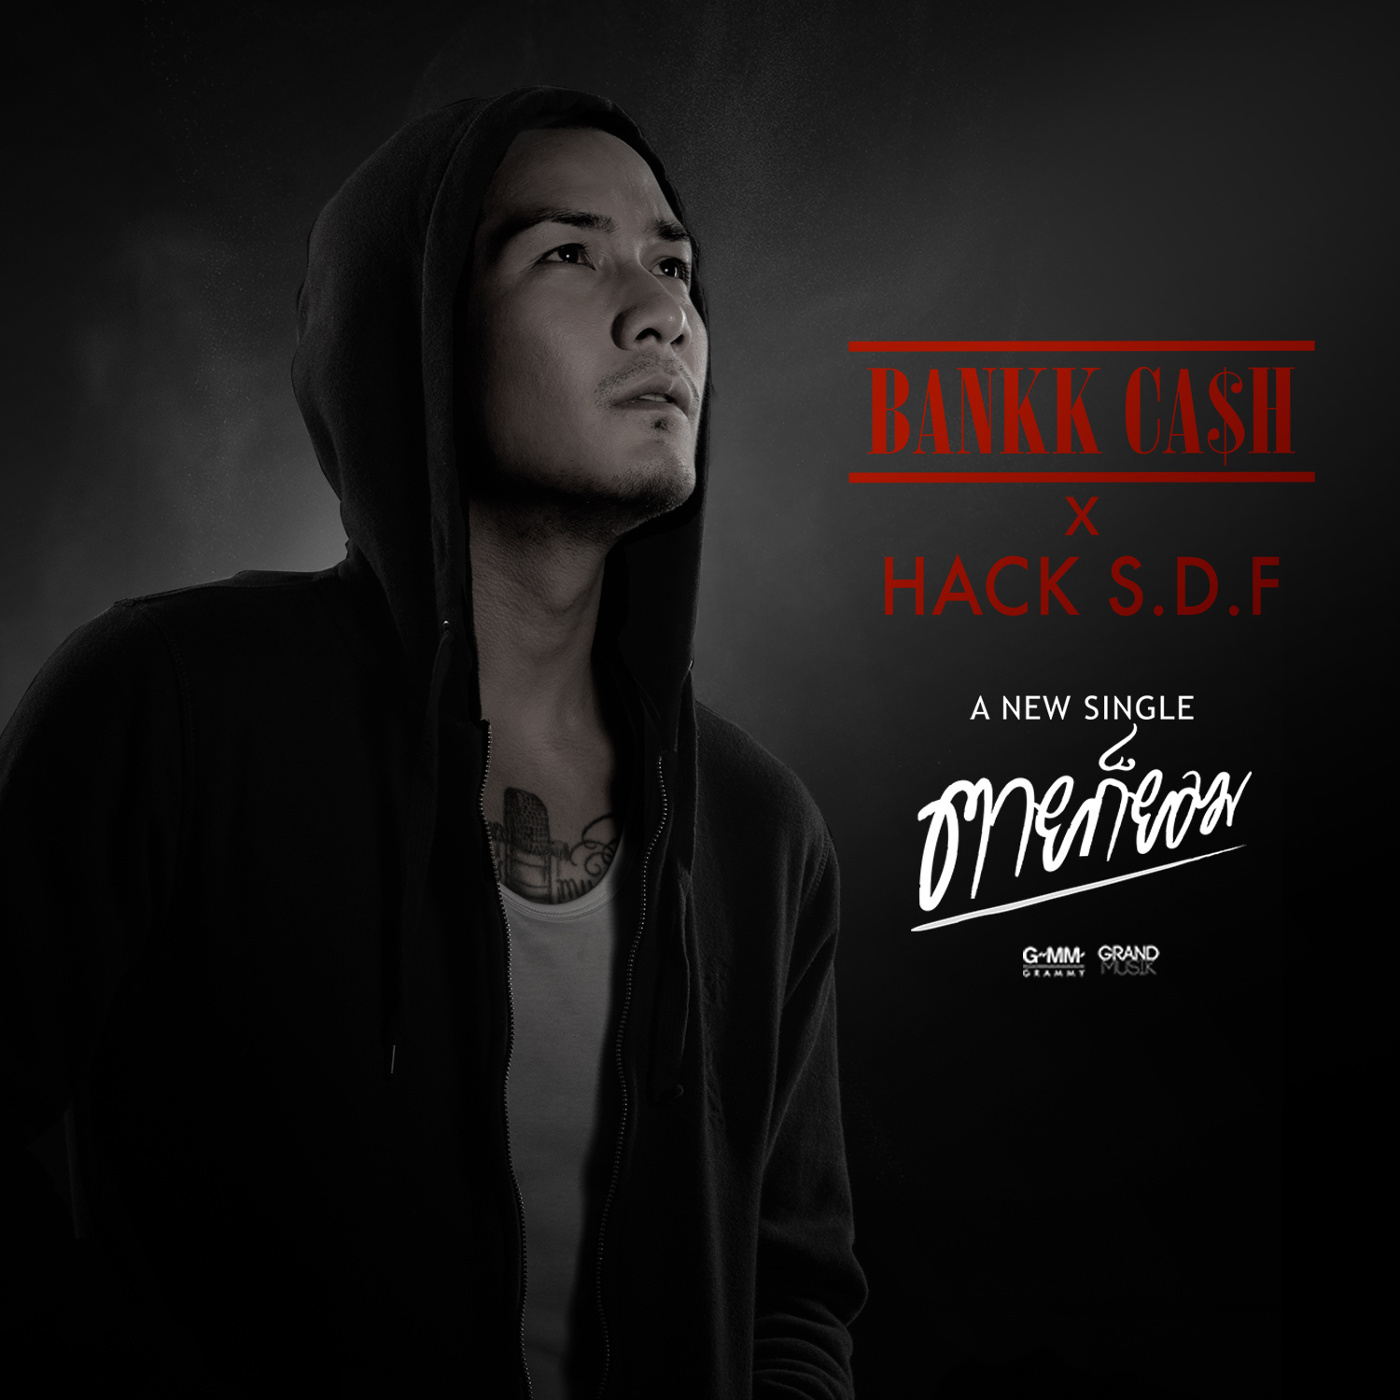 Download ตายก็ยอม – แบงค์ แคช (BANKK CA$H), HACK S.D.F 4shared By Pleng-mun.com